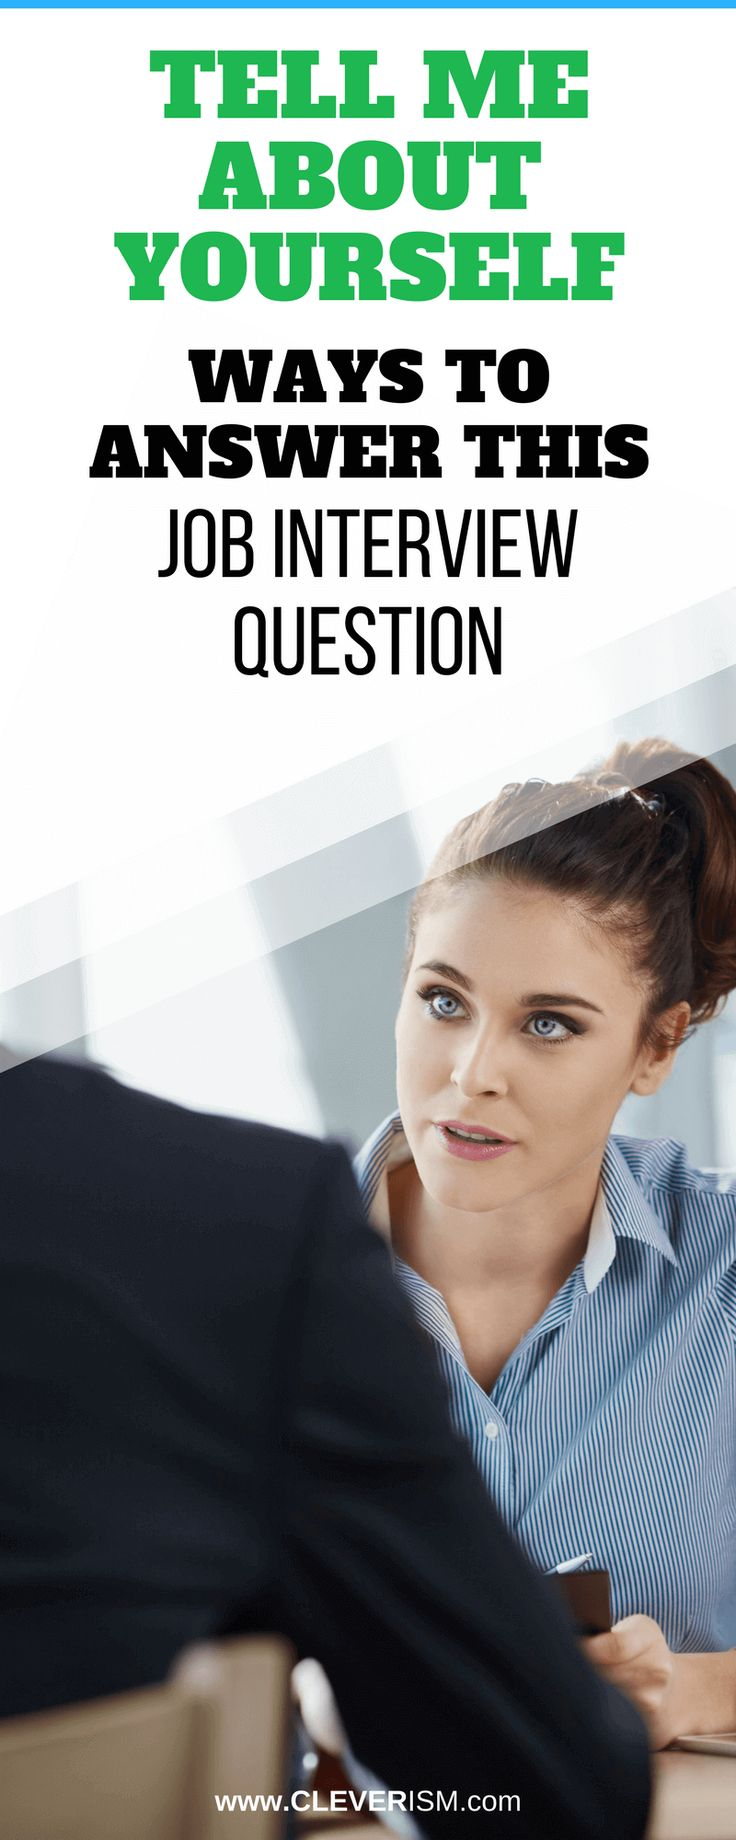 Tell Me About Yourself—Ways to Answer this Job Interview Question - #JobSearch #Job #JobInterview #TellMeAboutYourself